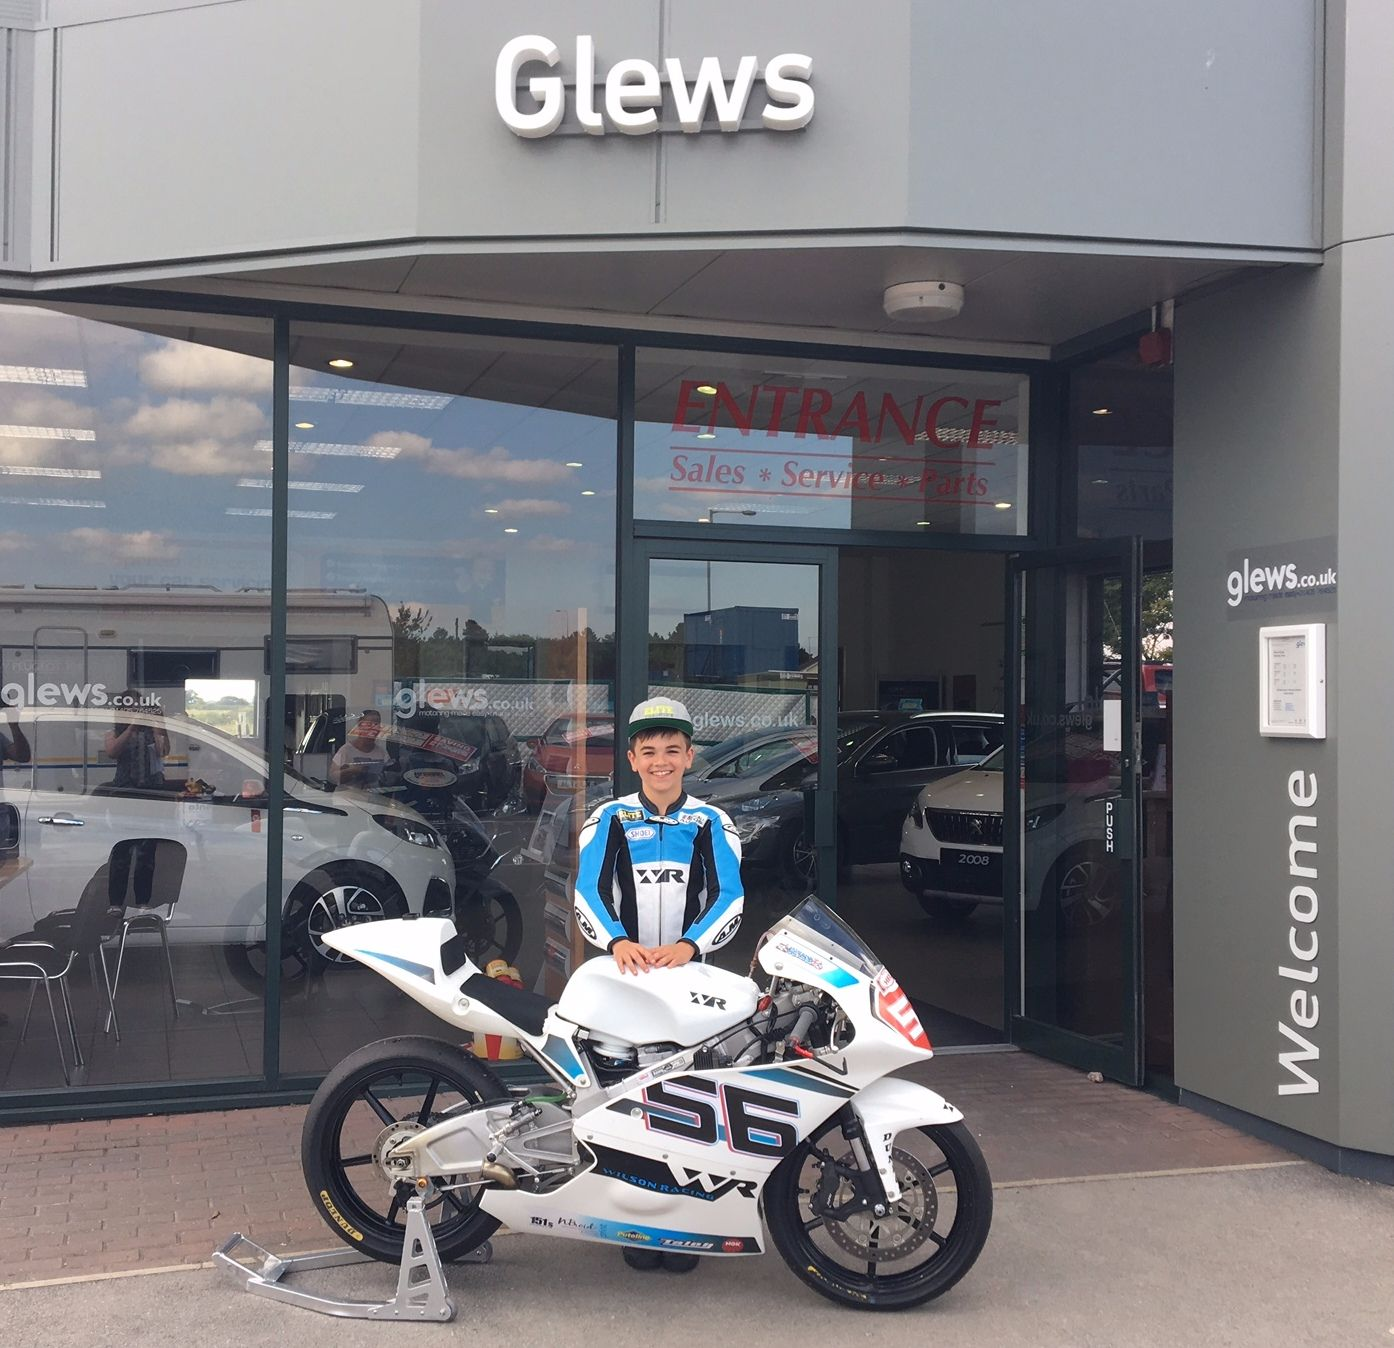 Glews Adds Fuel to Superbikers' Championship Hopes